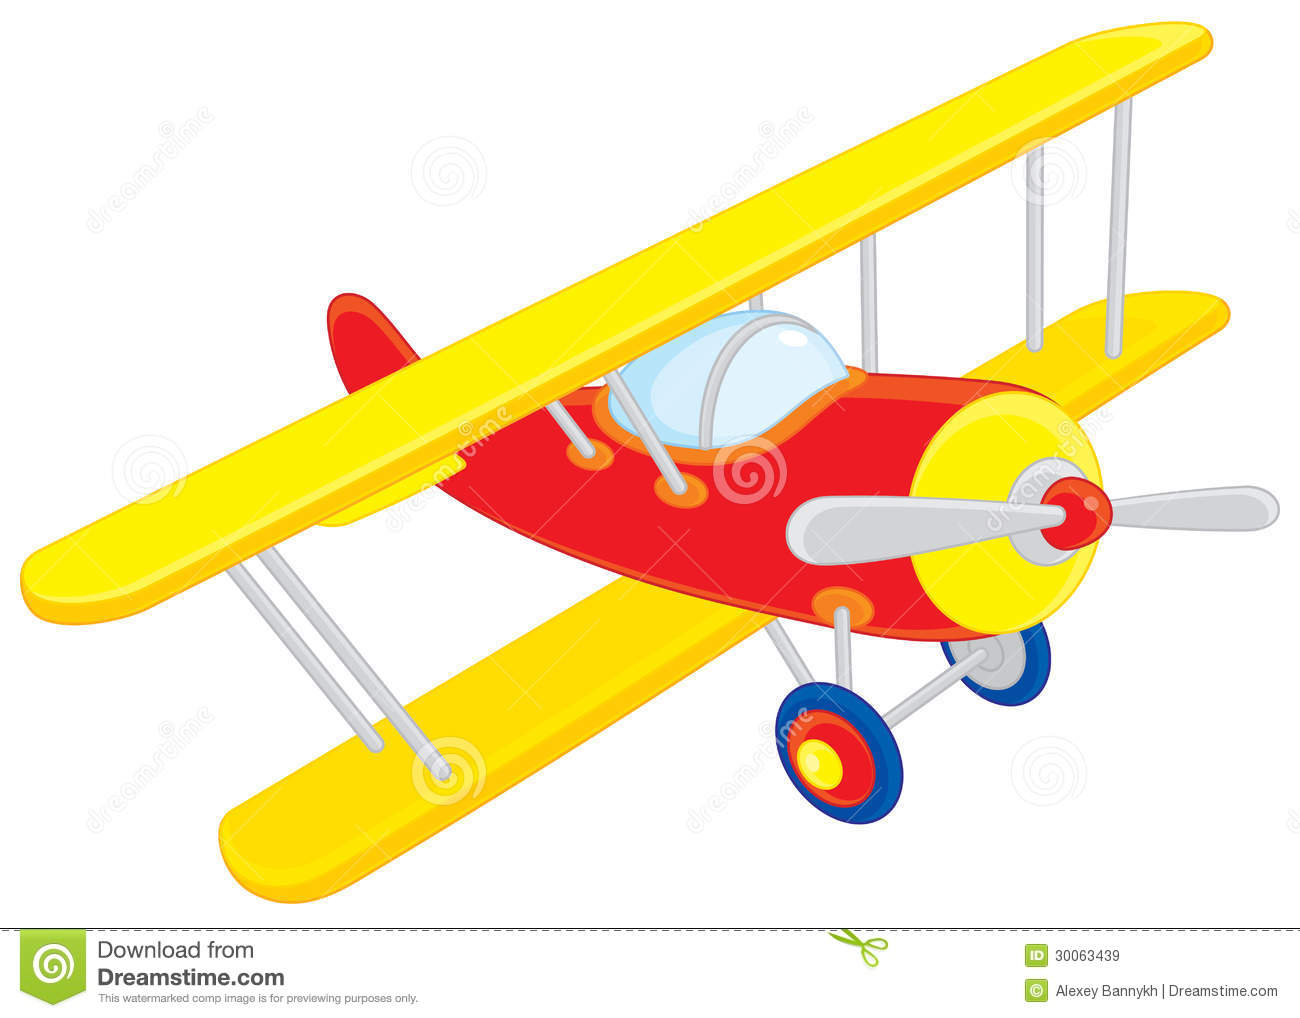 plane stock vector illustration of drawing clip aircraft 30063439 rh dreamstime com aircraft clipart images aircraft clipart free download